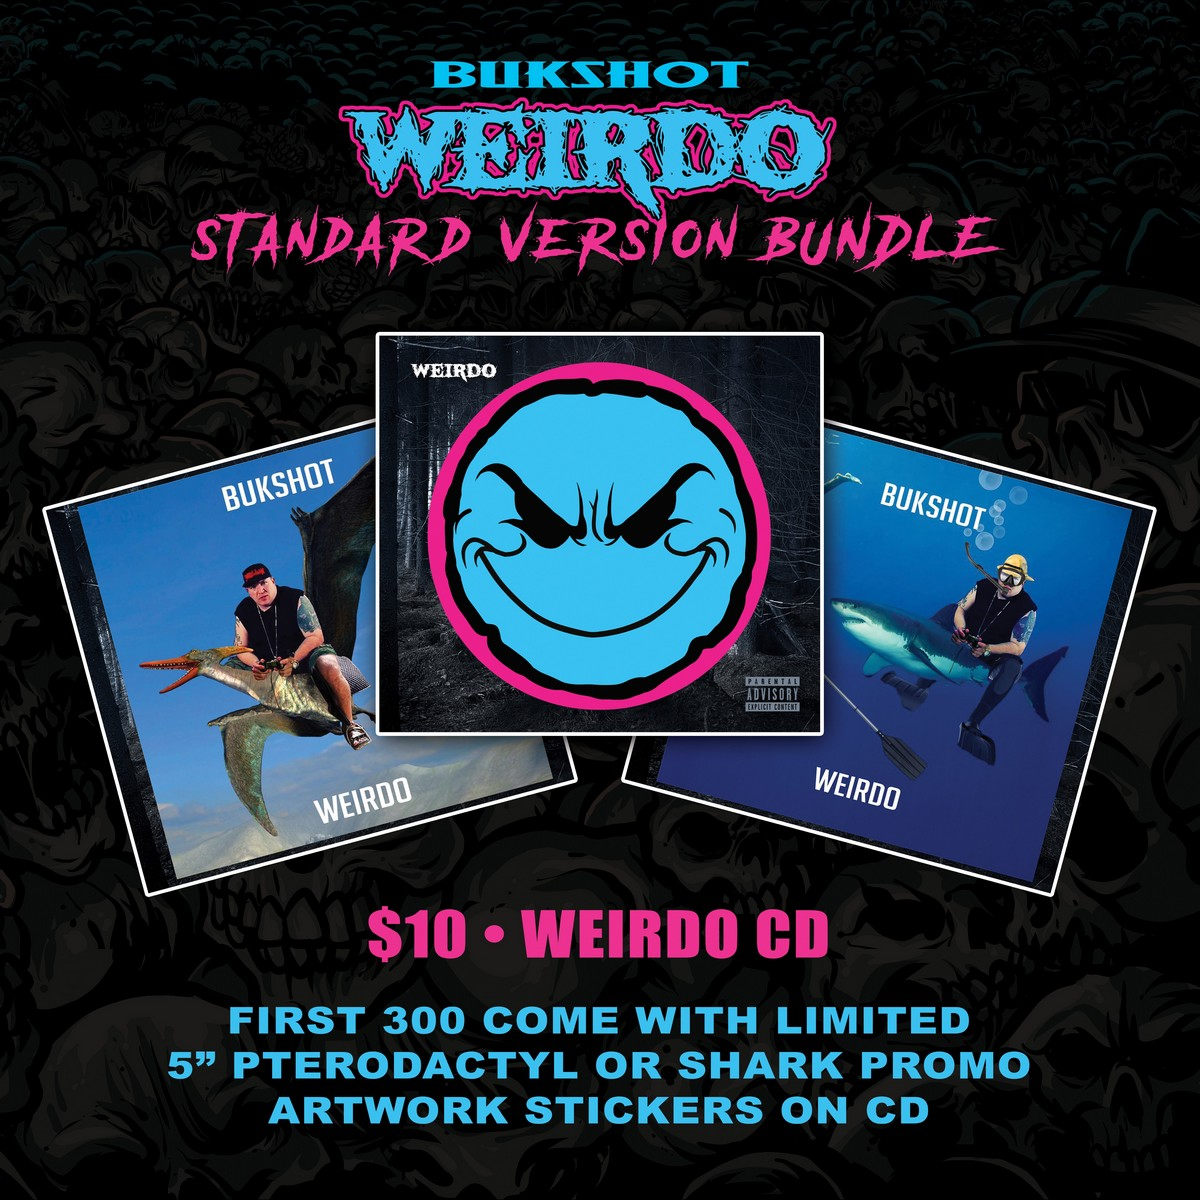 "Bukshot ""Weirdo"" CD With Choice Of Pterodactyl Or Shark Limited 5″ Album Cover Sticker! (Standard Version Pre-Order)"